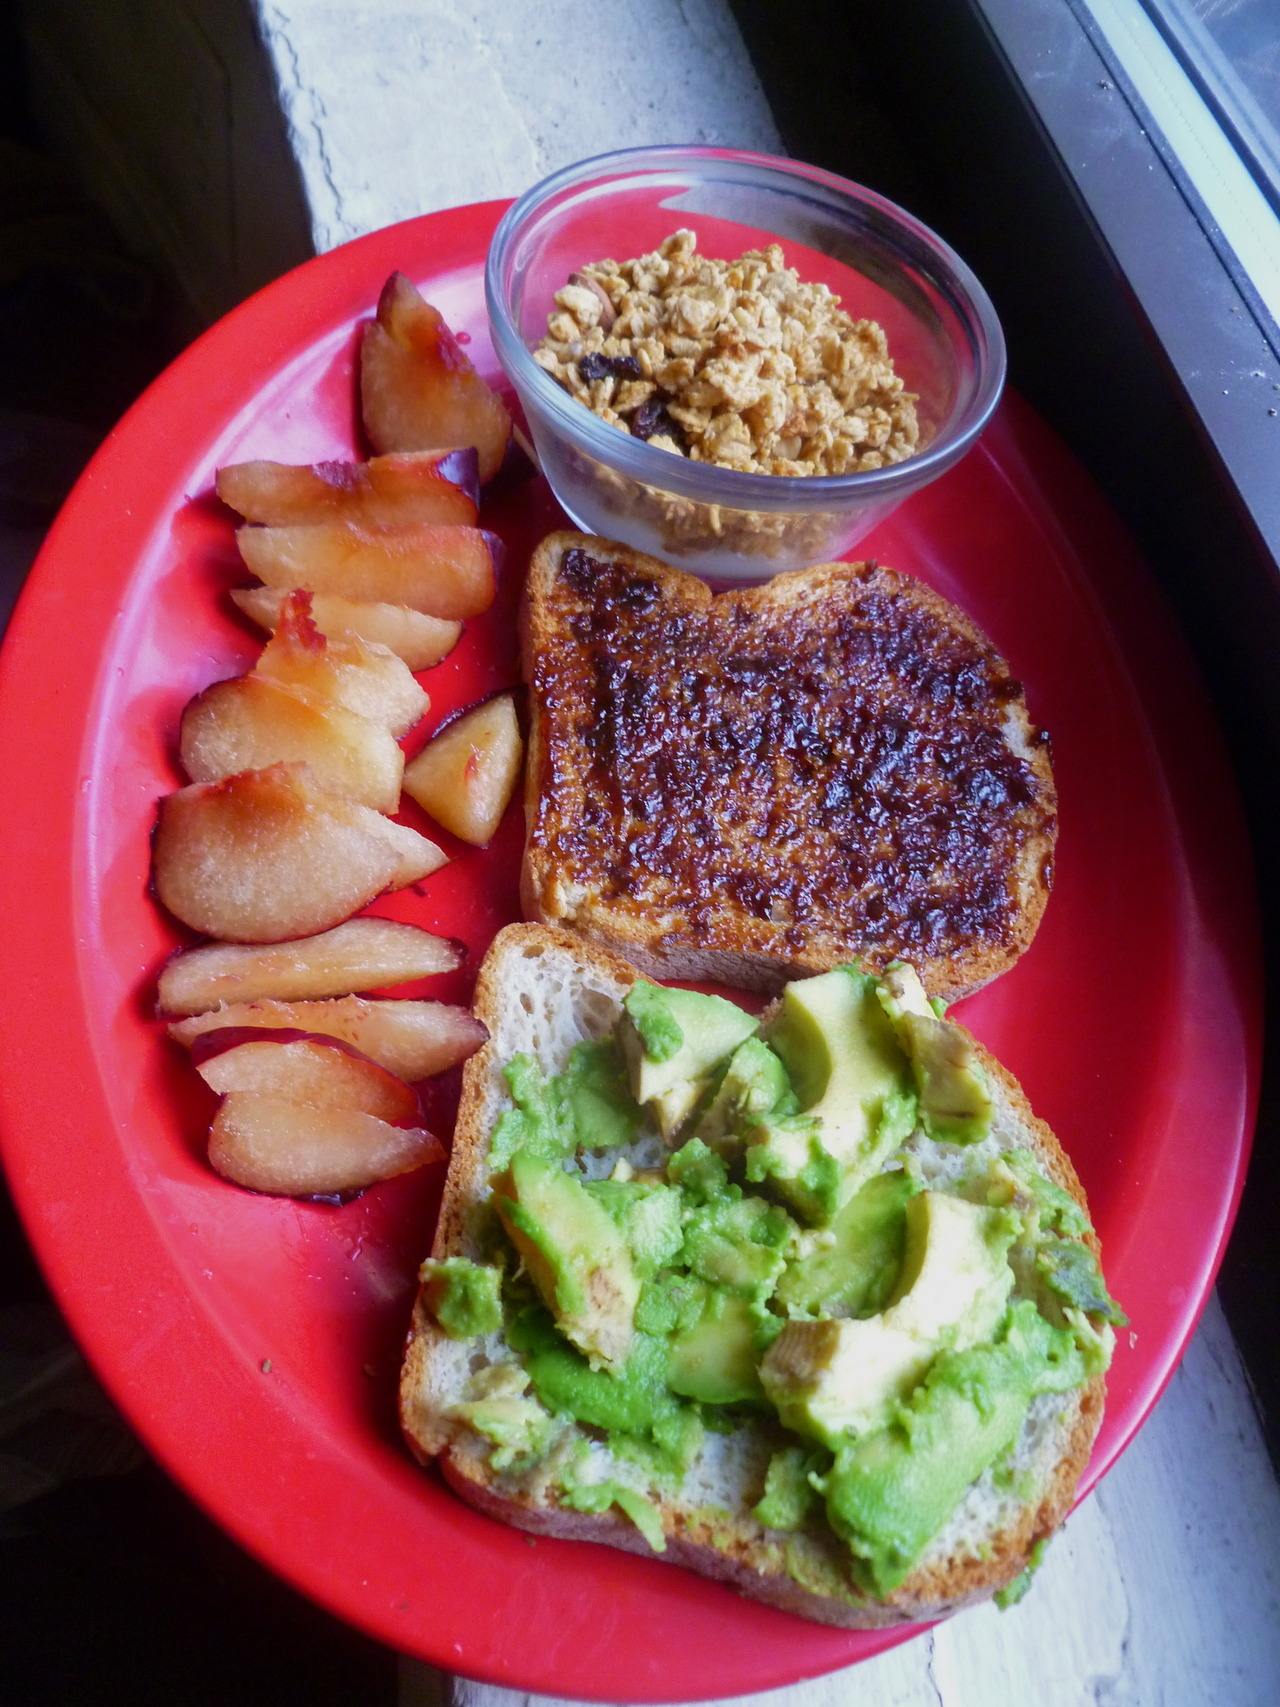 morning meals: avocado and fig butter spread across 2 slices of Udi's gluten free whole grain bread, a few spoonfuls of Trader Joe's vanilla flavoured Cultured Coconut Milk topped with almonds and country pumpkin spice granola and a sliced-up plum!